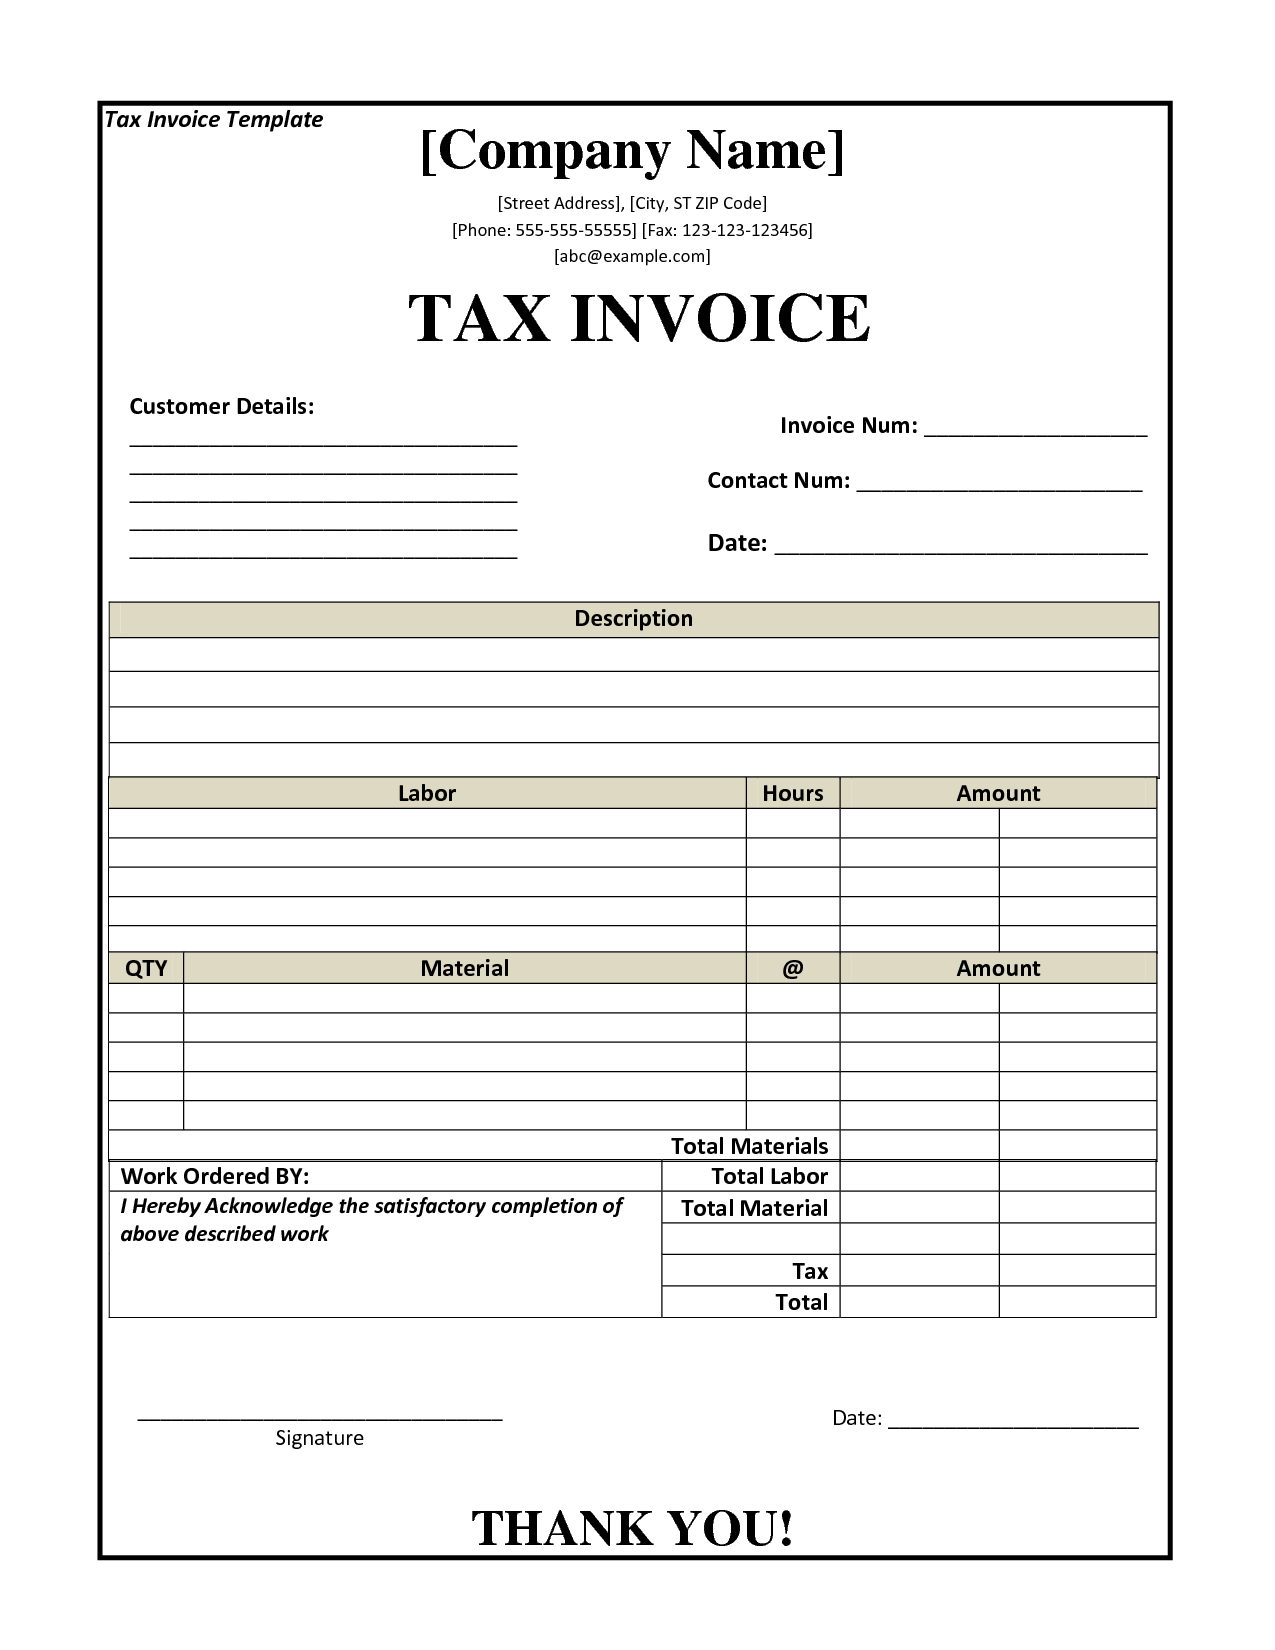 ato tax invoice template | invoice example, Simple invoice